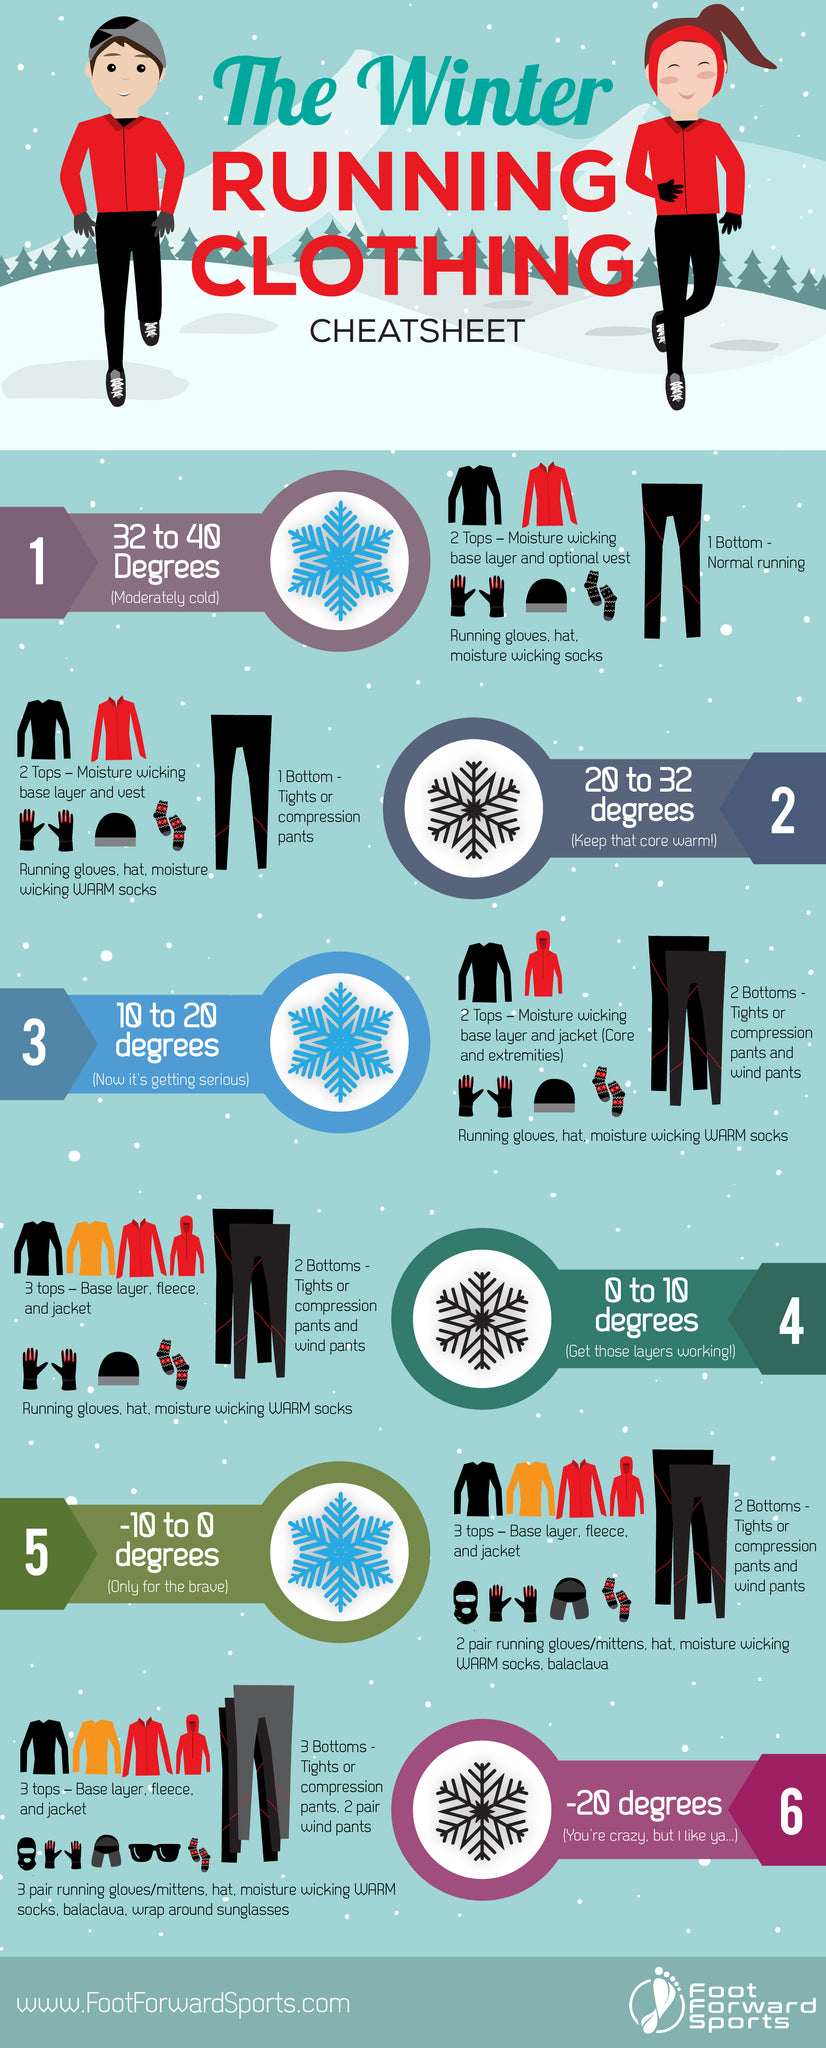 Cold Weather Running Clothing CheatSheet for Runners by Foot Forward Sports